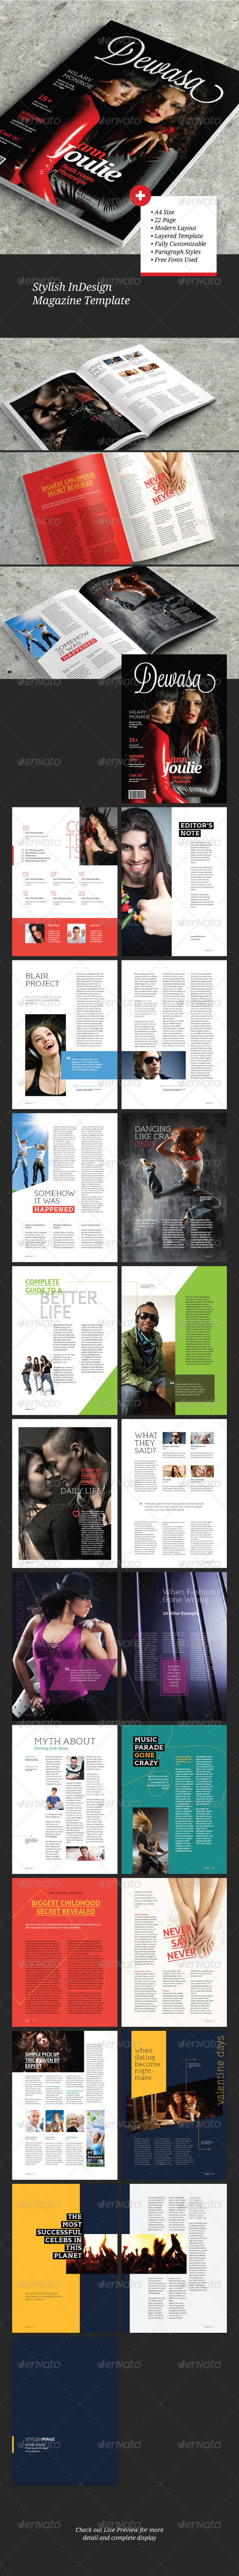 GraphicRiver Stylish InDesign Magazine Template 6111426